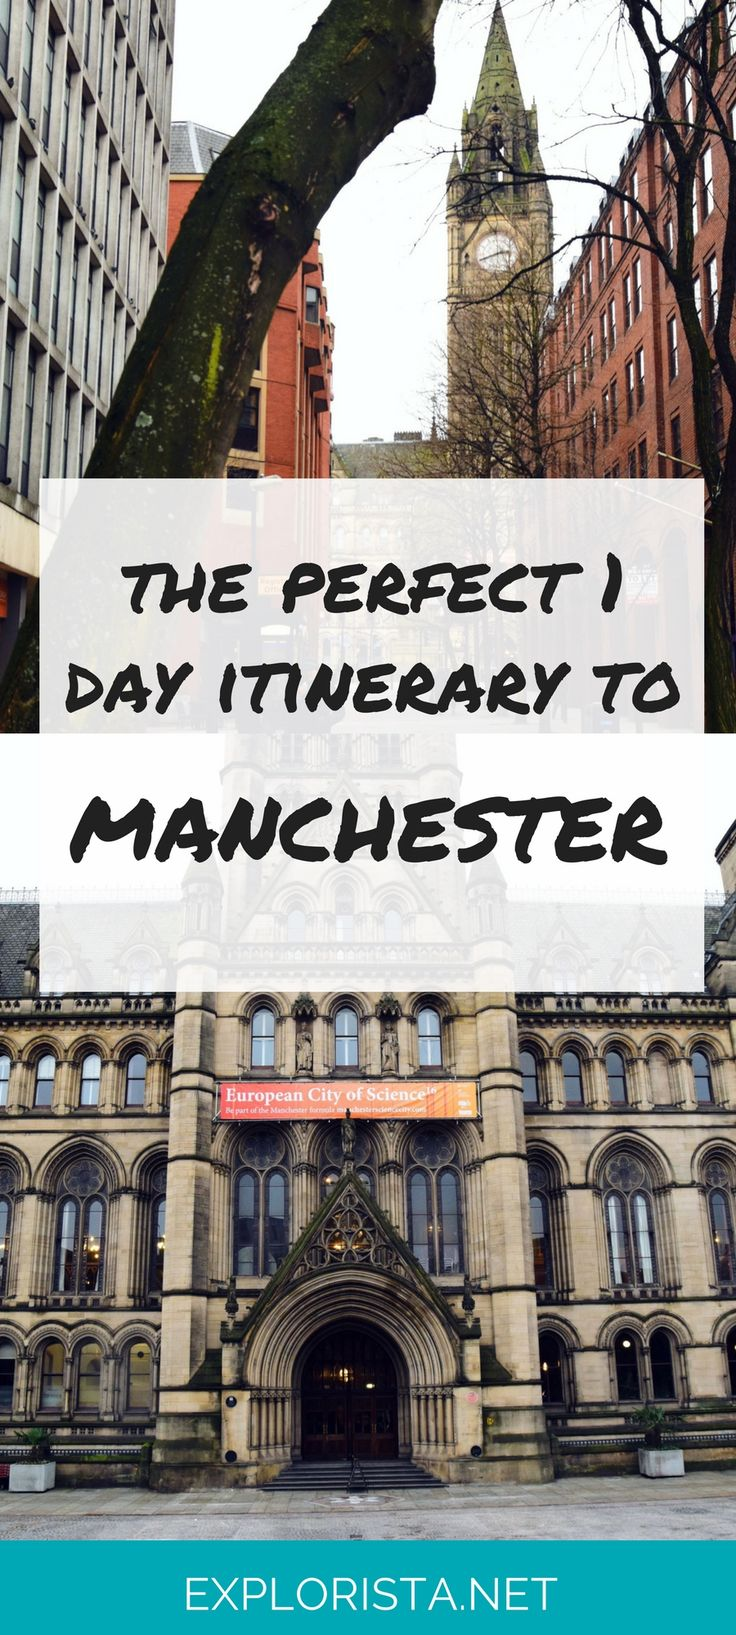 My first day trip took me to Manchester, a surprisingly small city known for it's fun pubs and friendly atmosphere. At only a 2 hr train ride from London, it was the perfect spot to explore in a day!